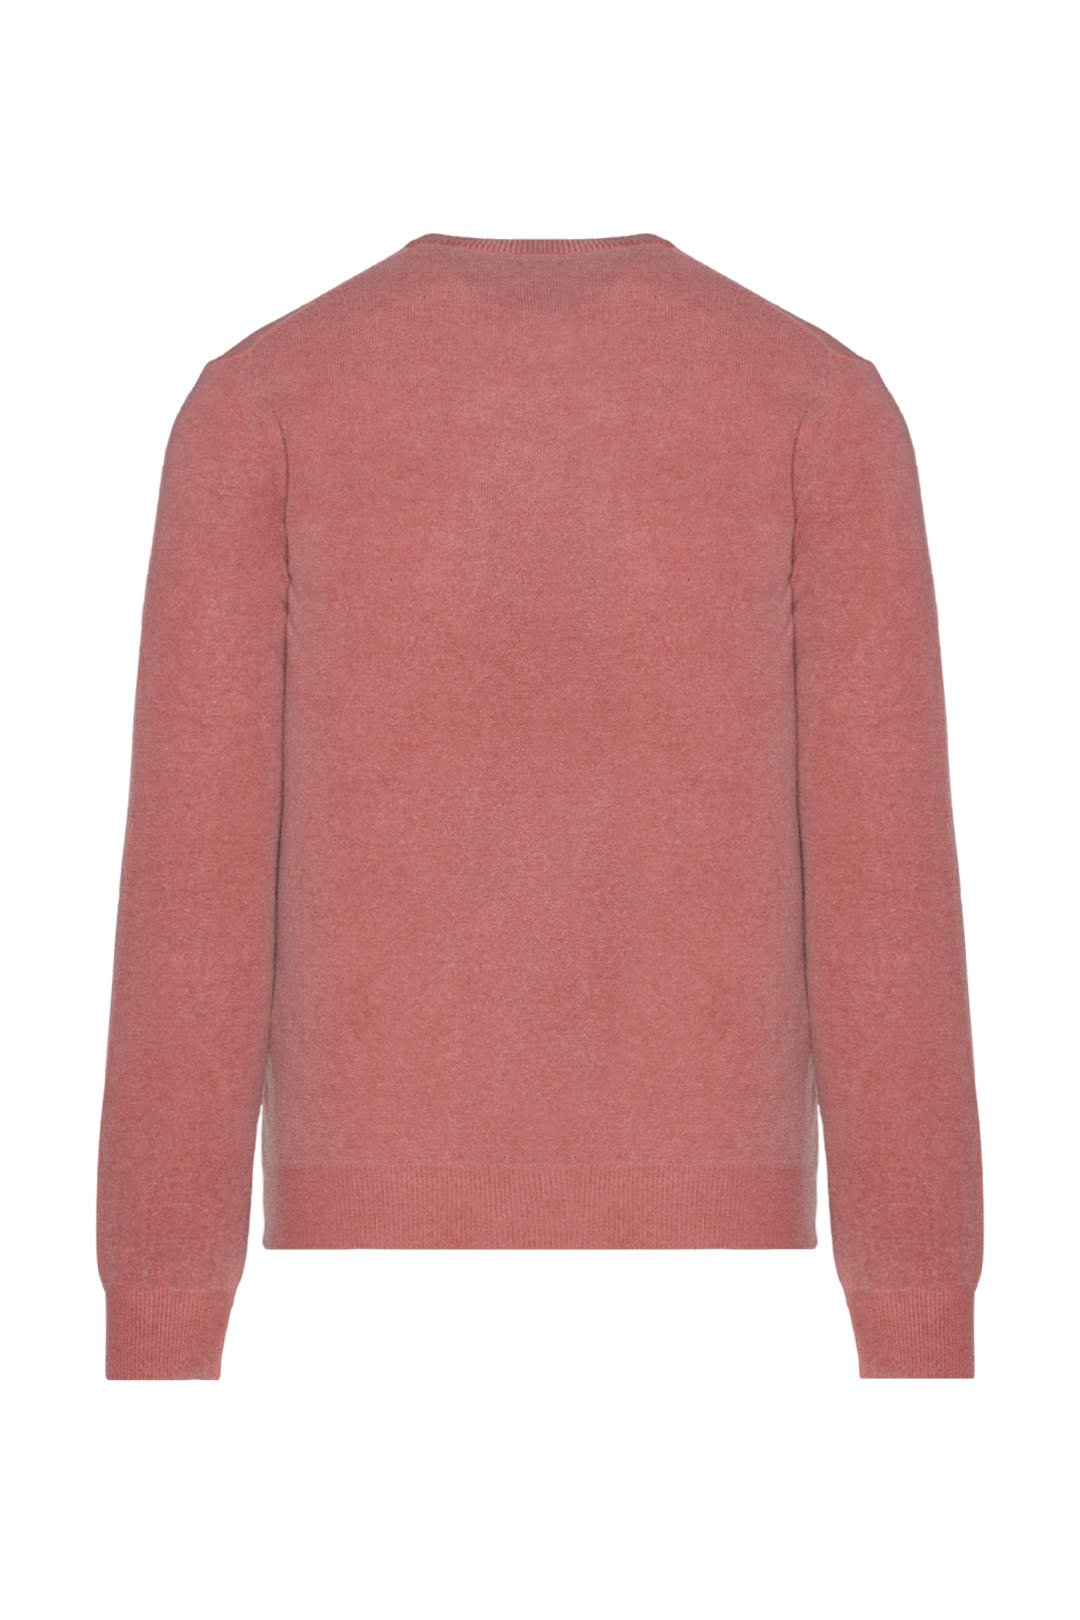 Wool embroidered round neck sweater      2